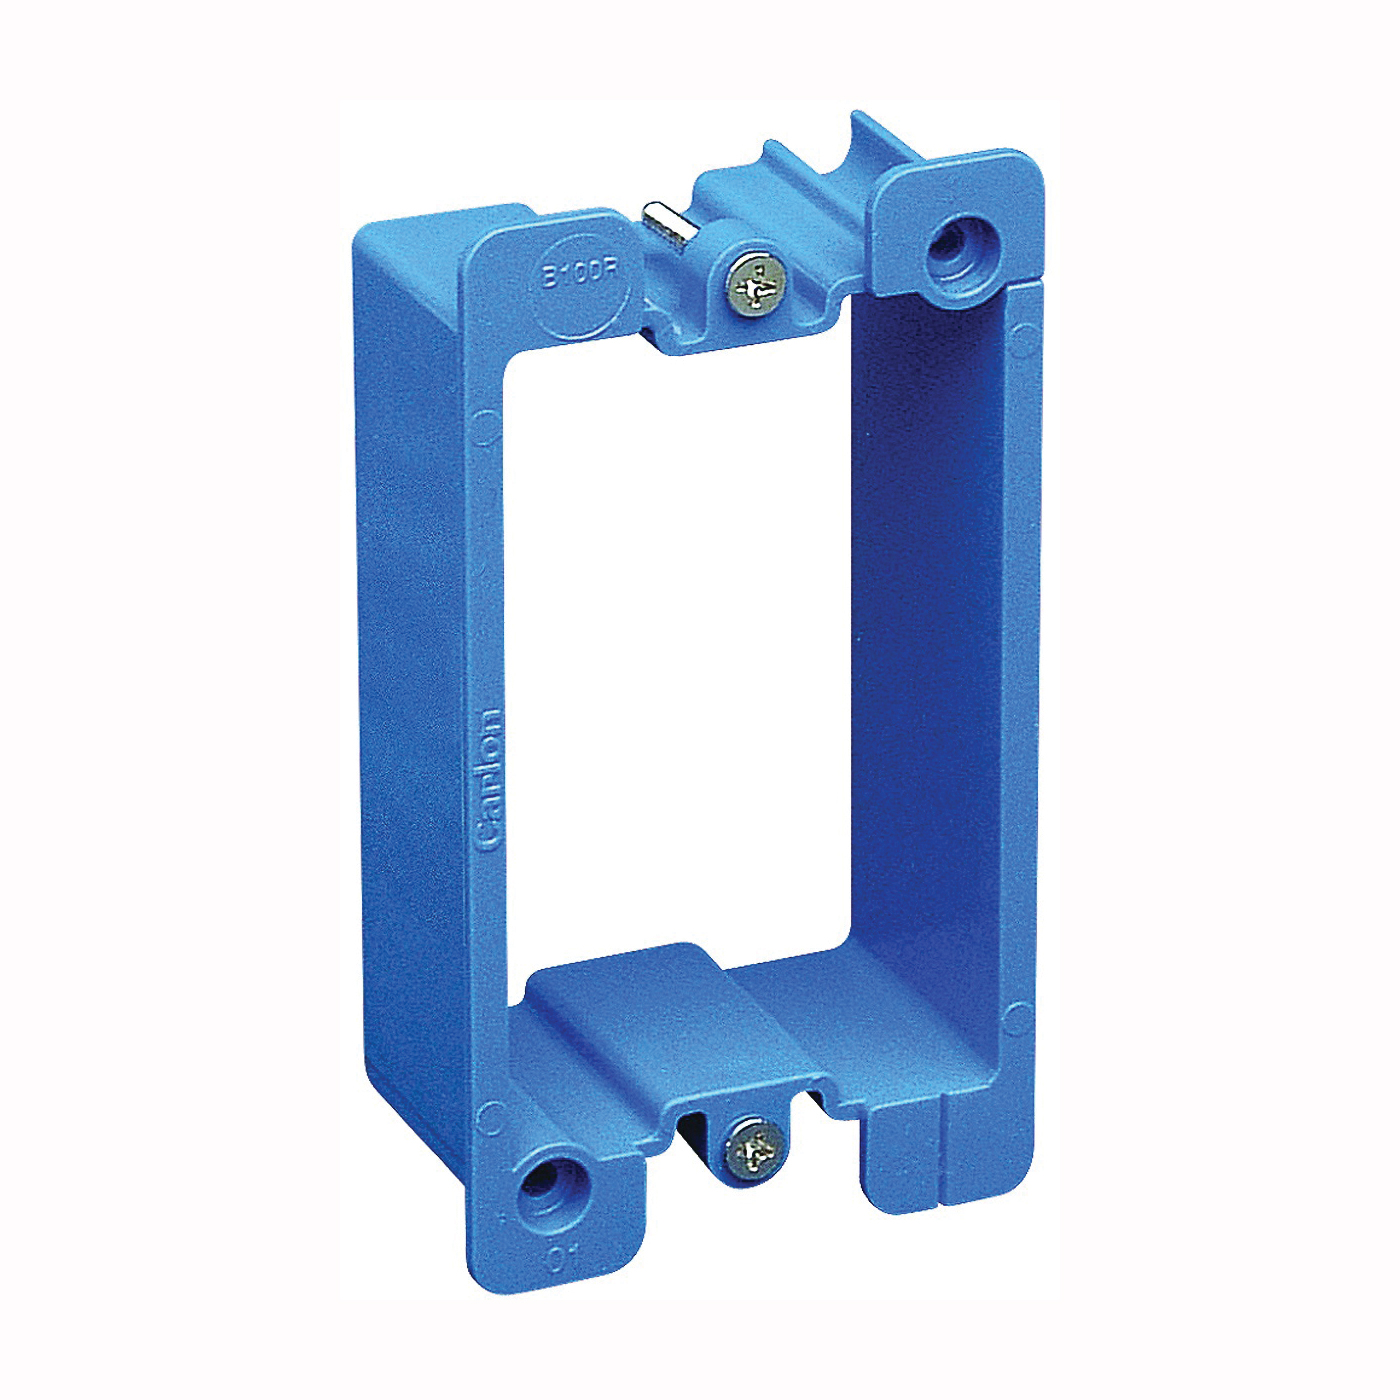 Picture of Carlon B1EXT-CRD Box Extender, 3.28 in L, 2.18 in W, 1-Gang, PVC, Blue